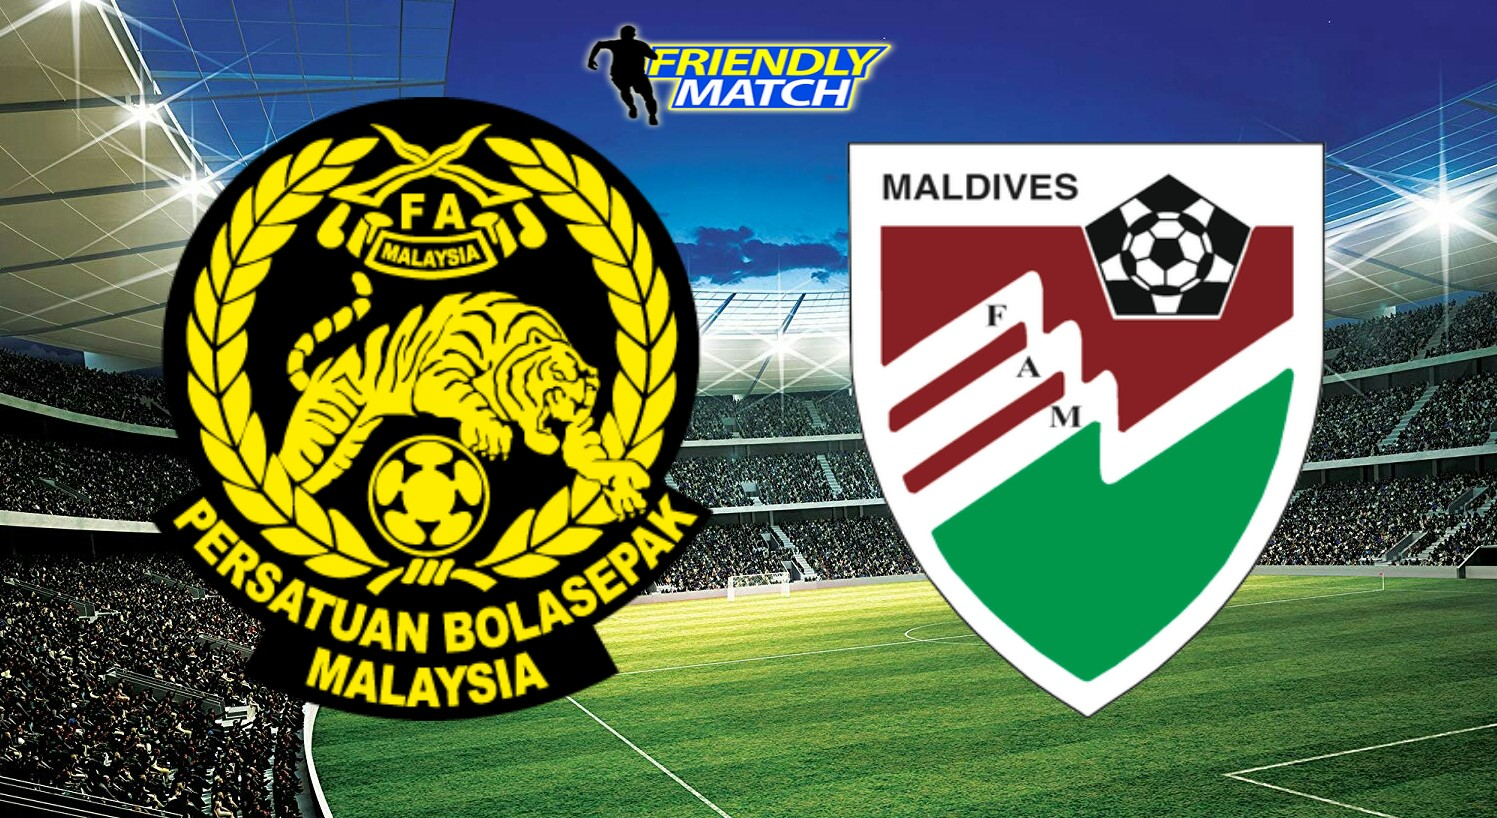 Live Streaming Malaysia vs Maldives 3.11.2018 Friendly Match